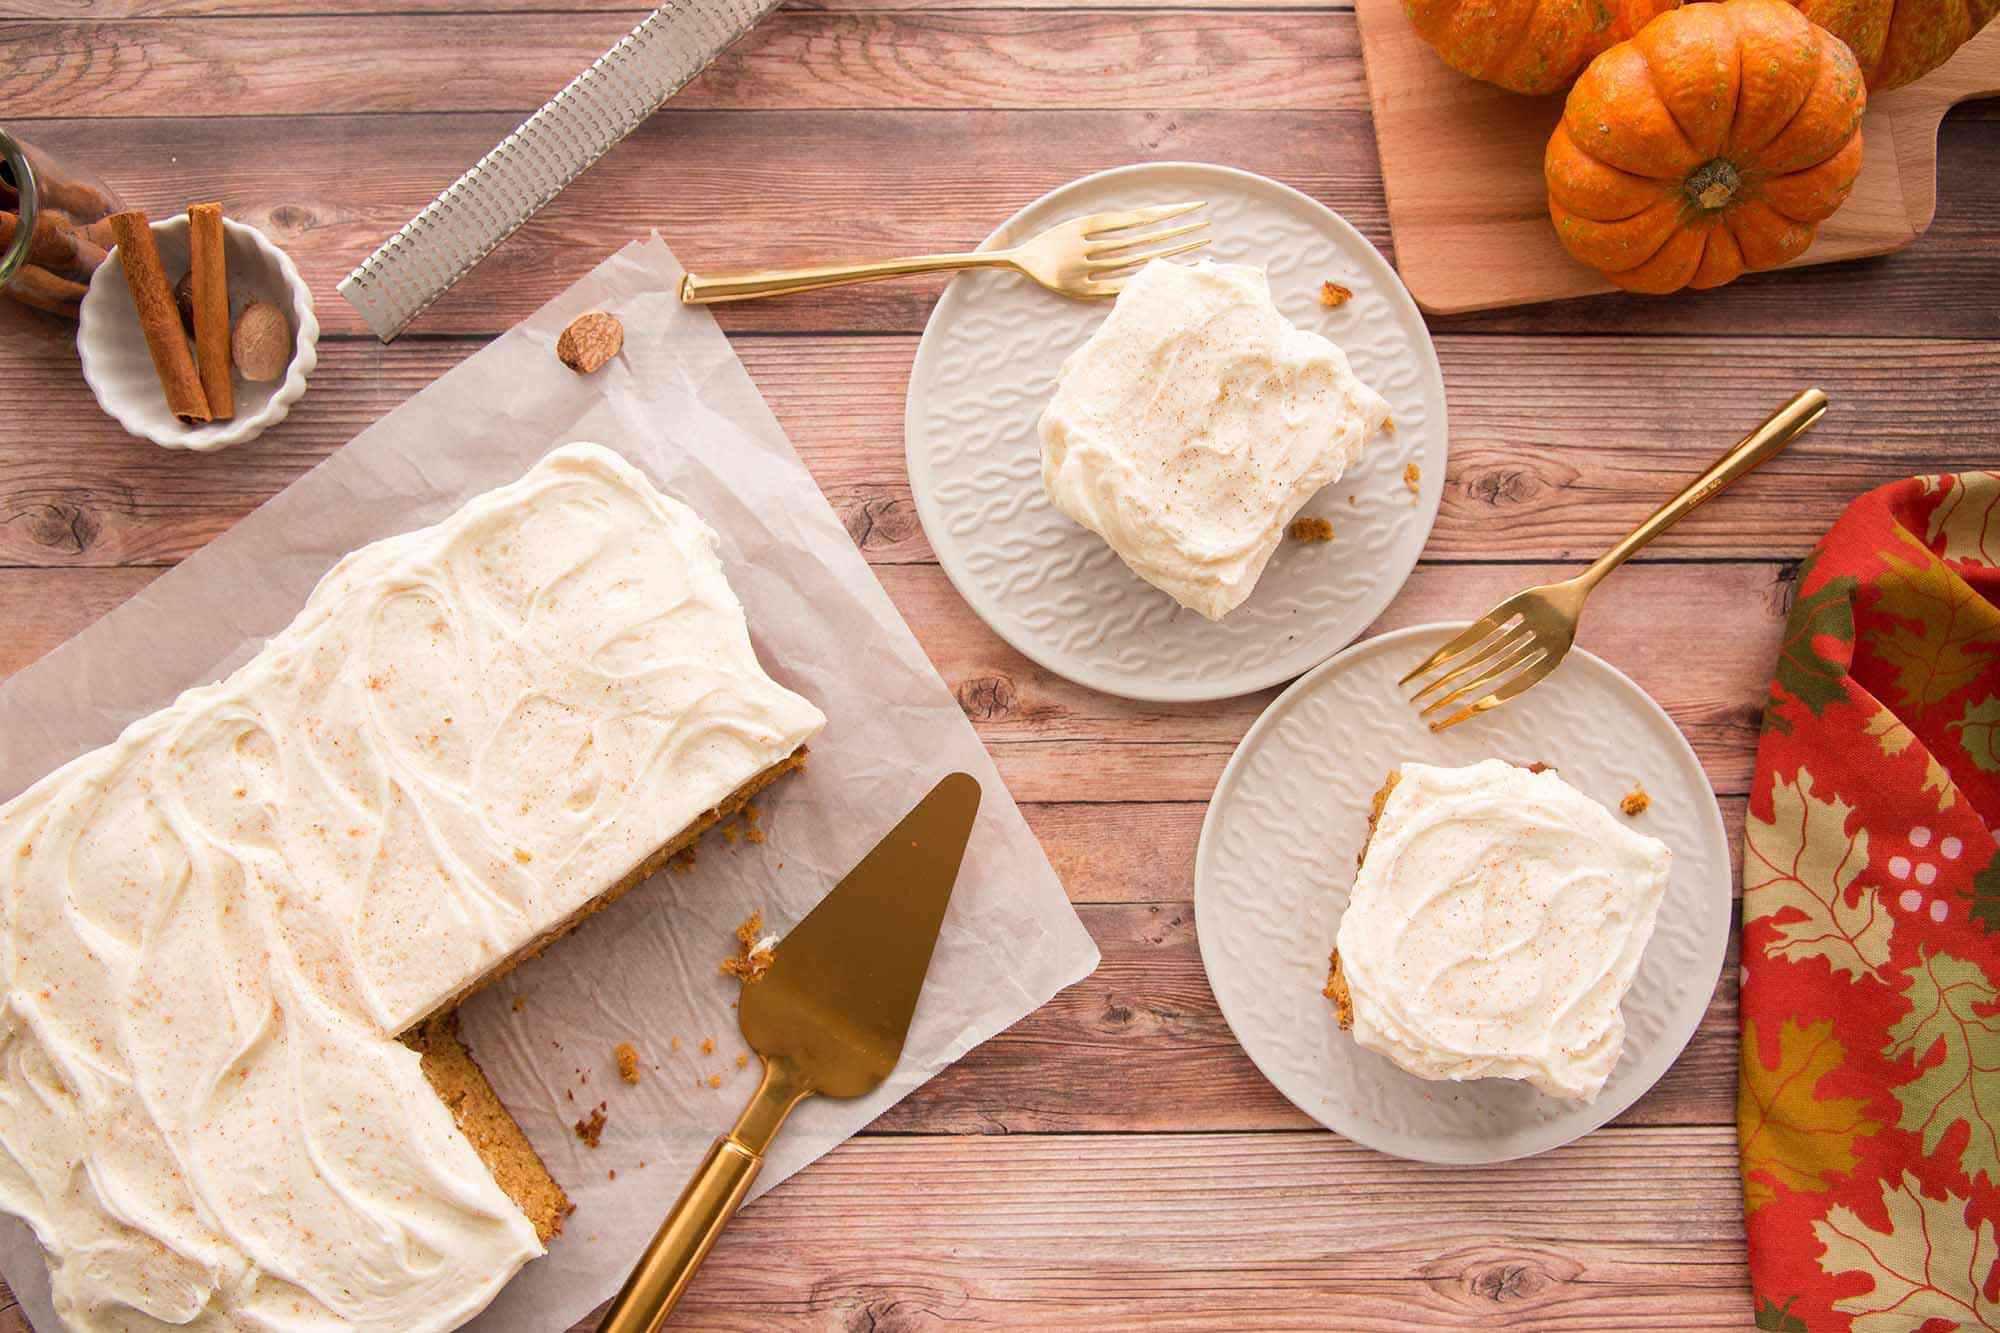 Pumpkin Snack Cake frosted with cream cheese is set on a table with two plates with pieces of cake to the right.